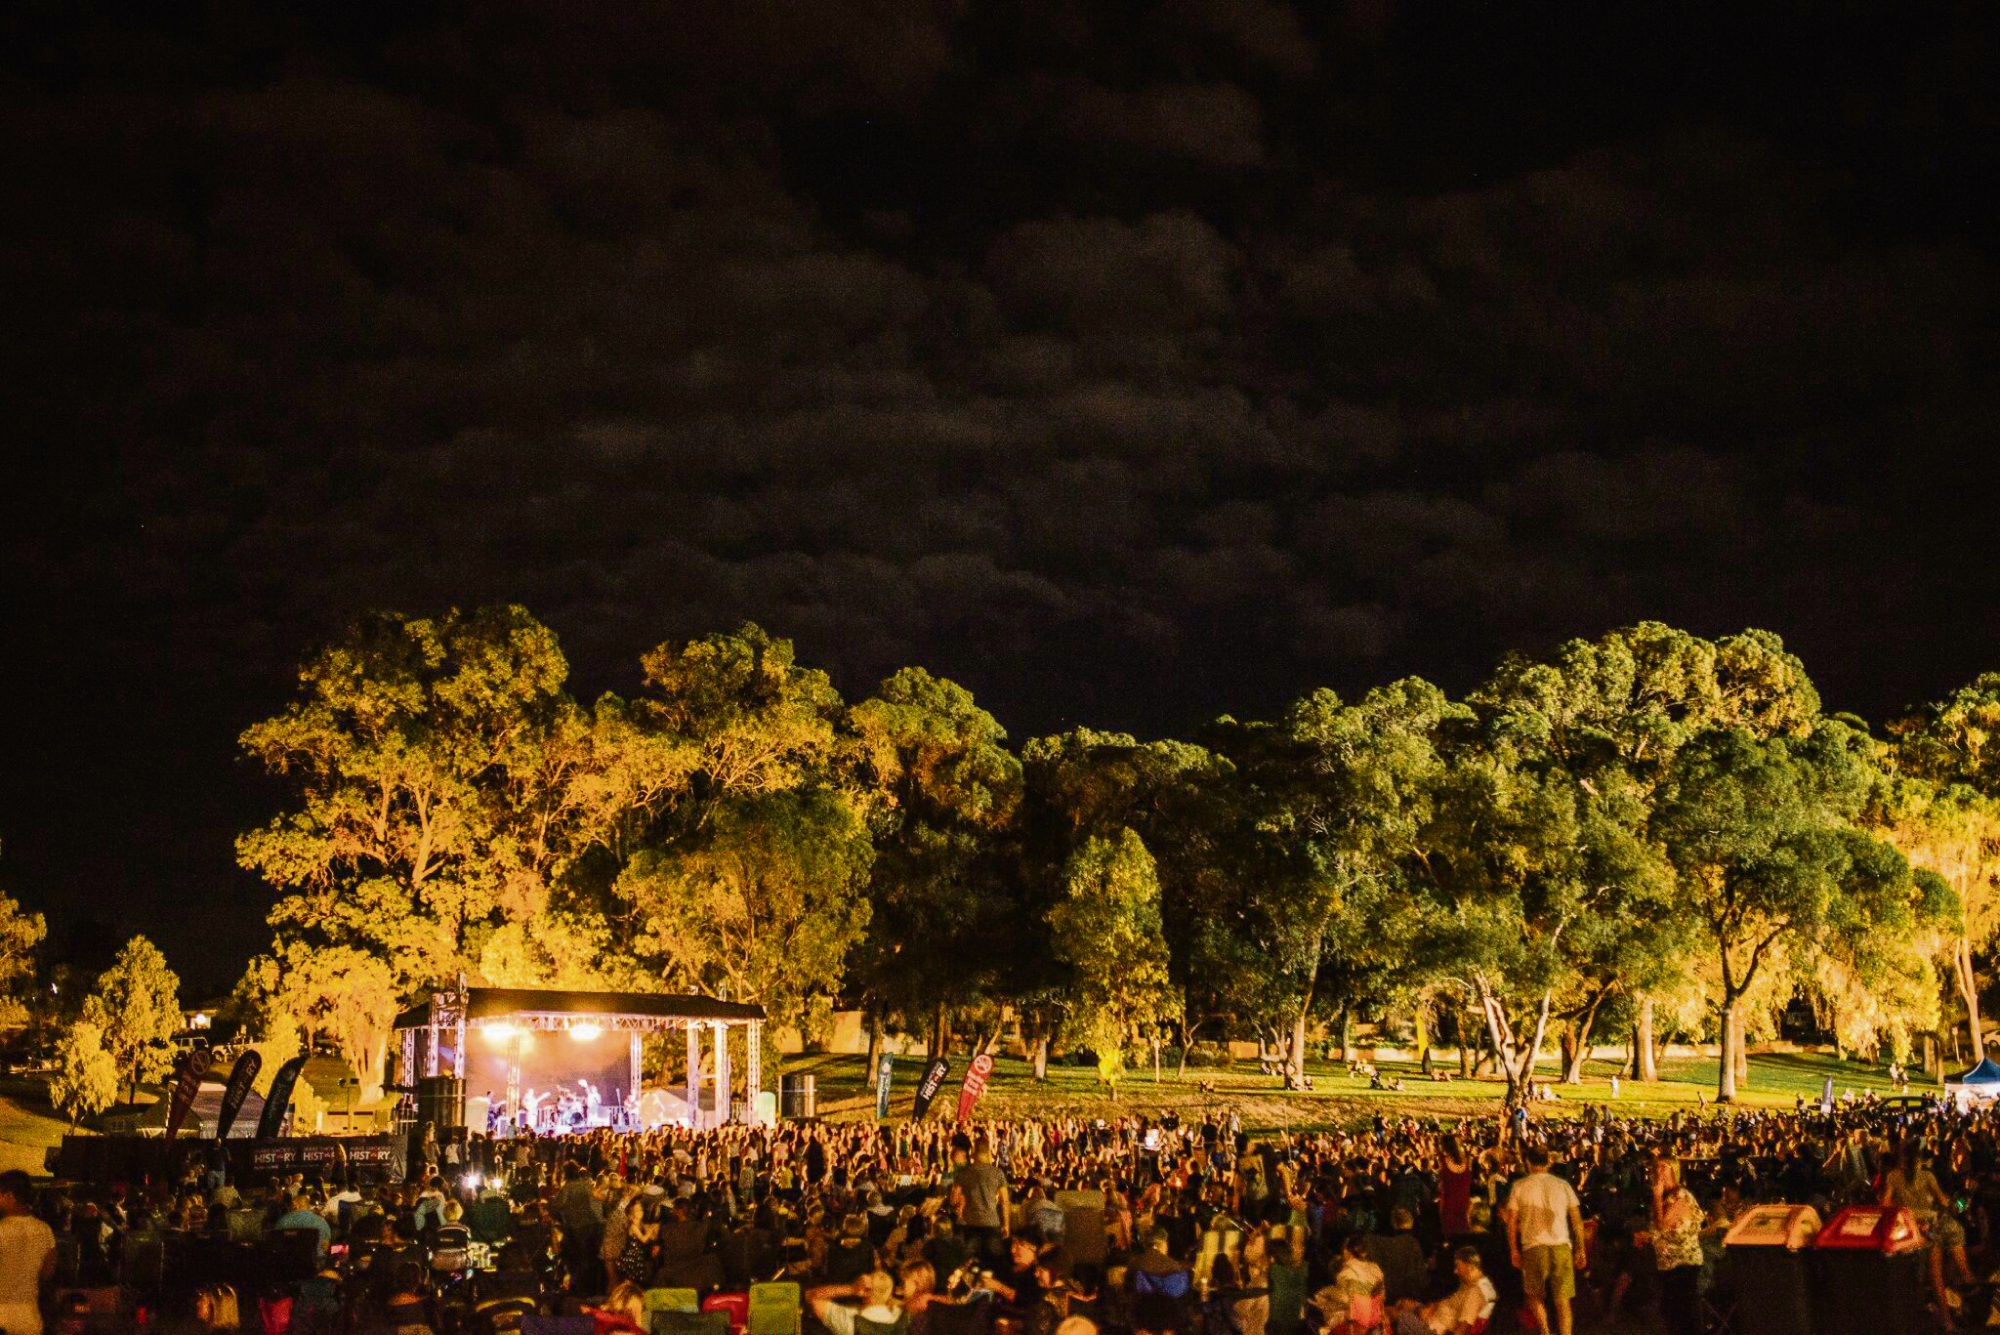 Great concert finale for Music in the Park series